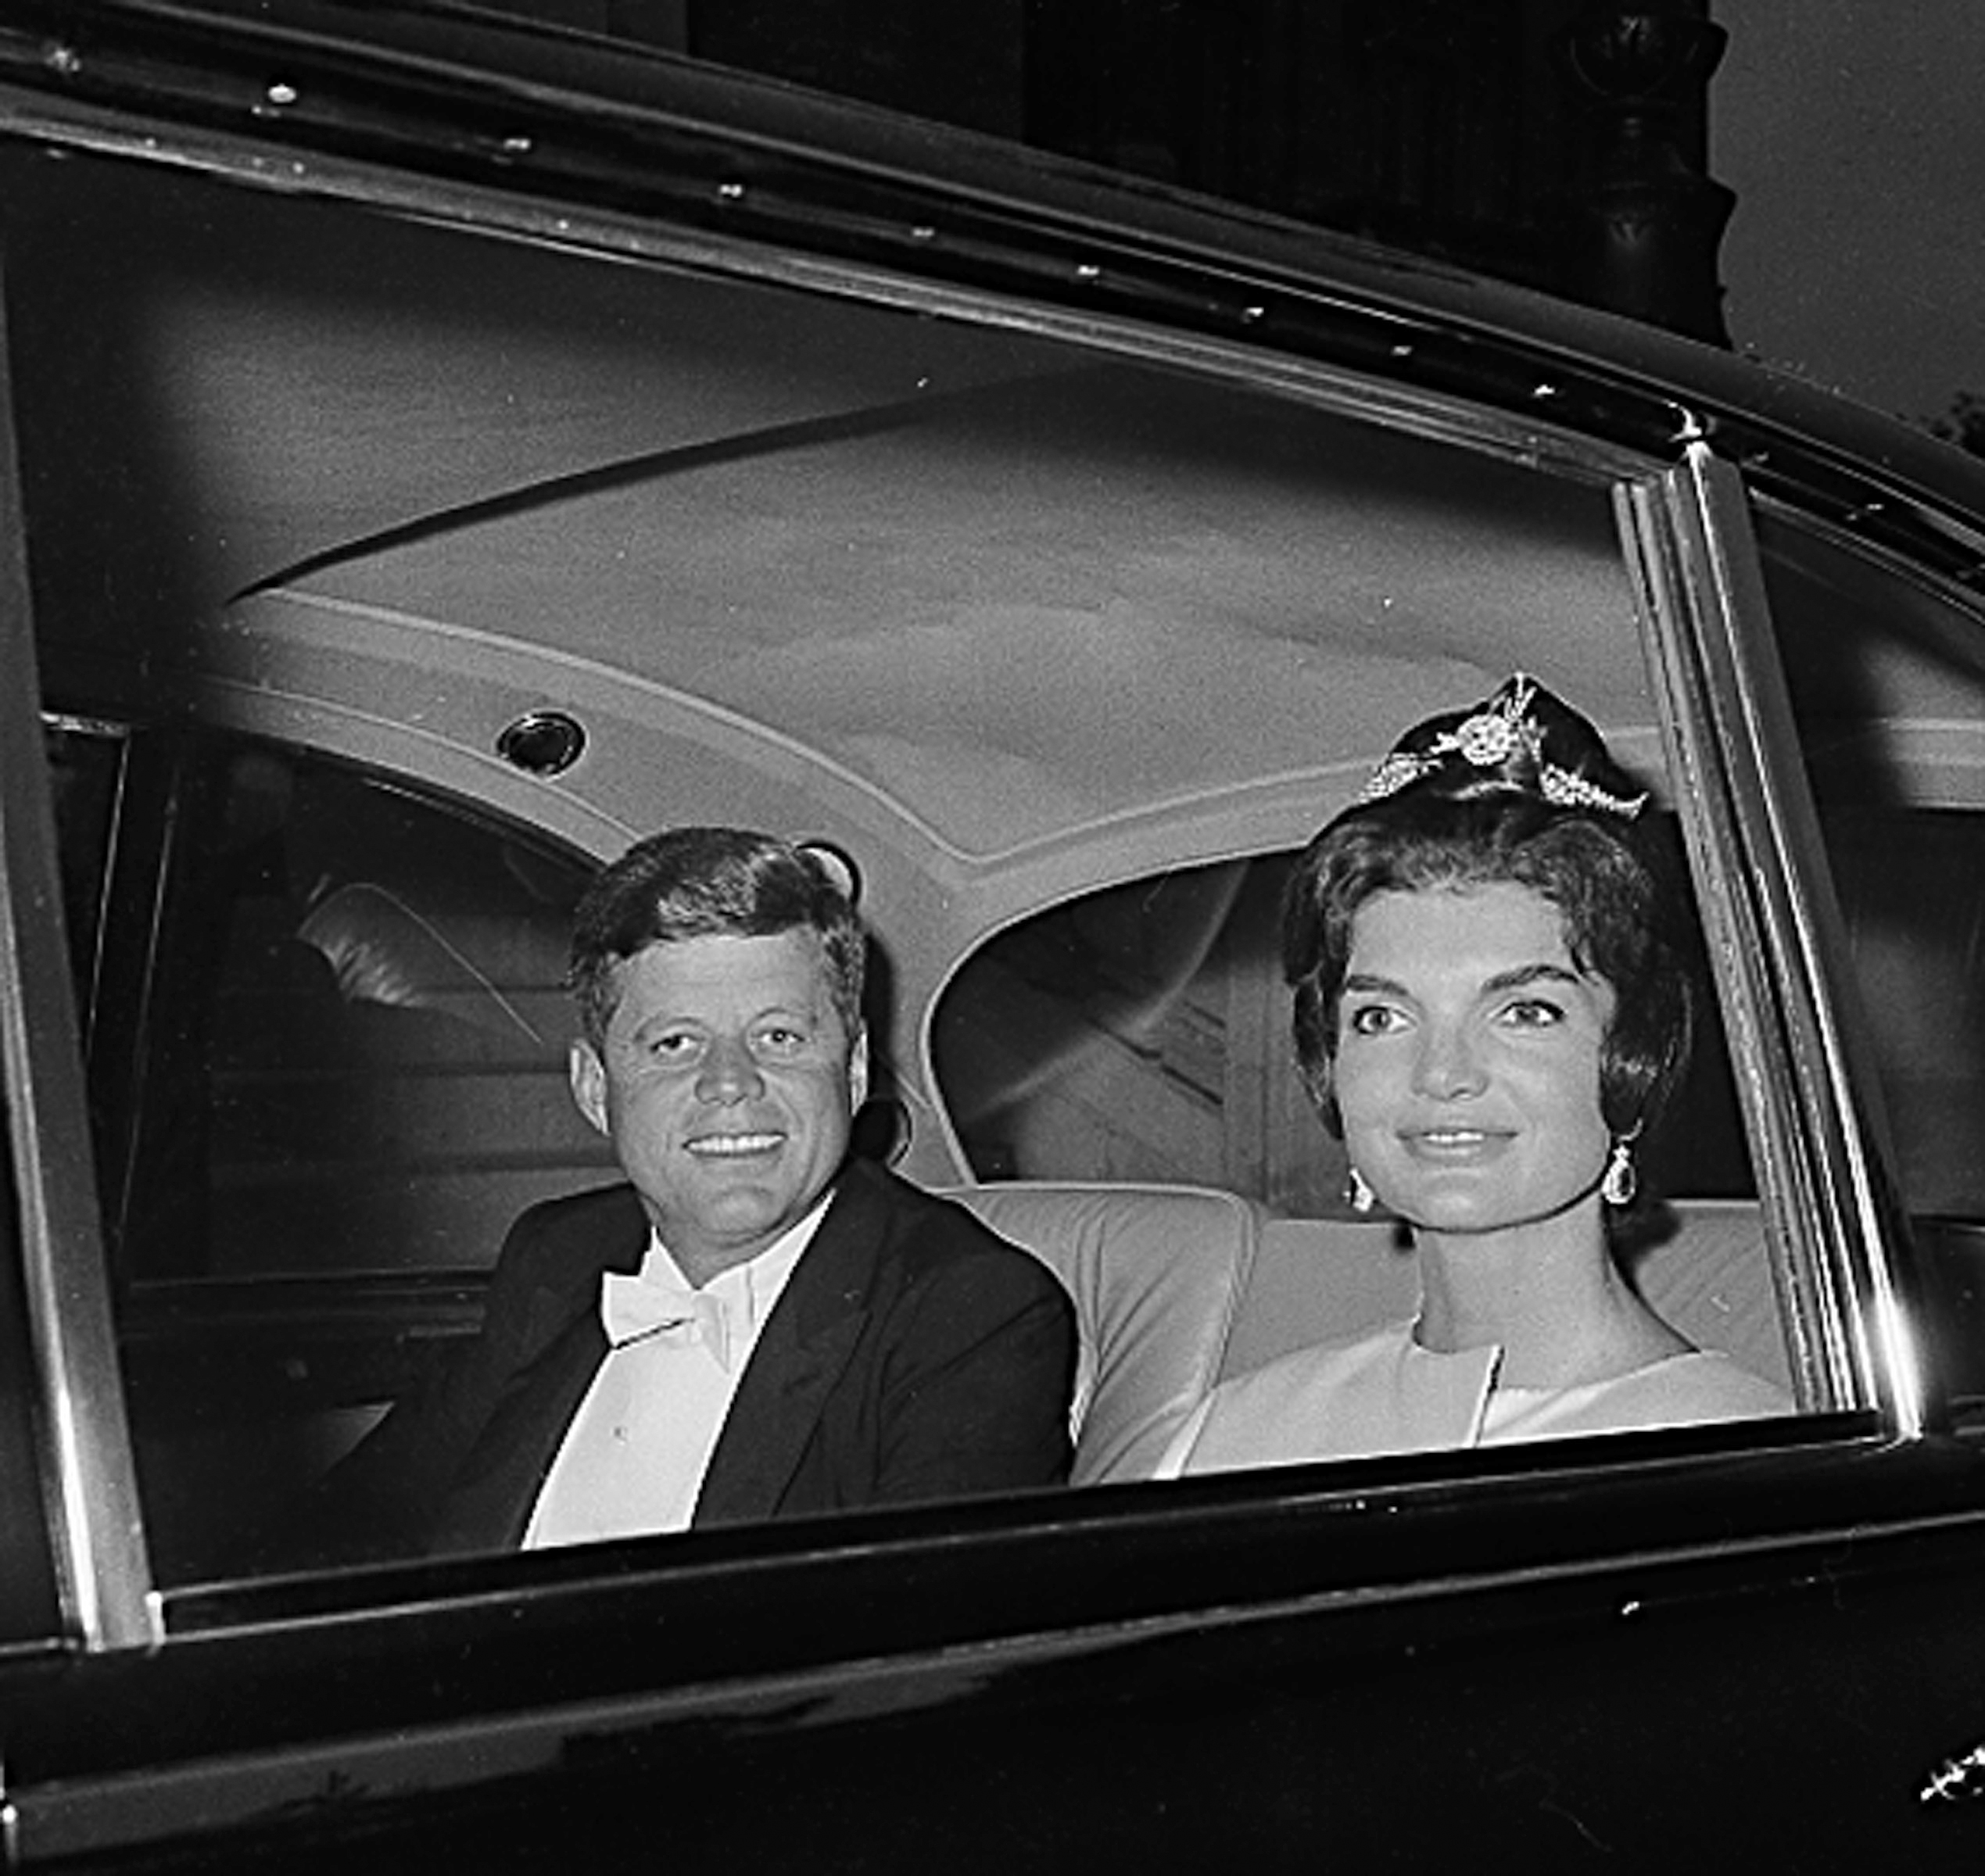 President John F. Kennedy with First Lady Jacqueline Kennedy as they leave their residence at Quai D'Orsay, Paris, for a state dinner in the Hall of Mirrors in Versailles on June 1, 1961. Jackie is wearing her Van Cleef & Arpels emerald and diamond earrings and clips in her hair. Photo AP Photo